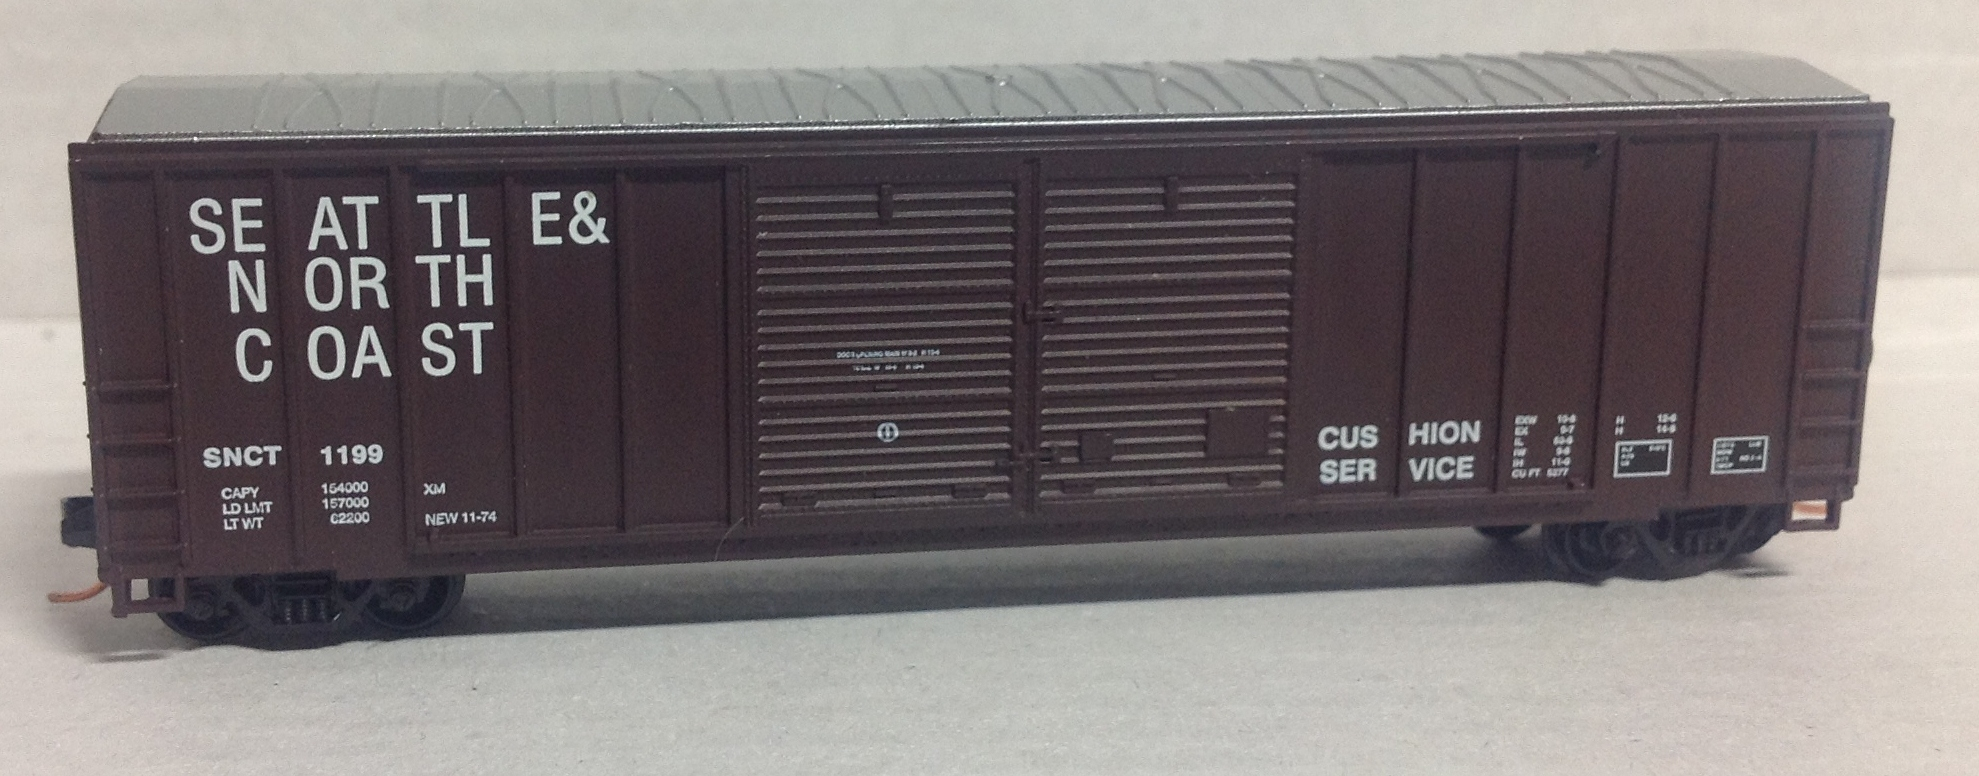 N Scale - Roundhouse - 8823 - Boxcar, 50 Foot, FMC, 5077 - Seattle & North Coast - 1199